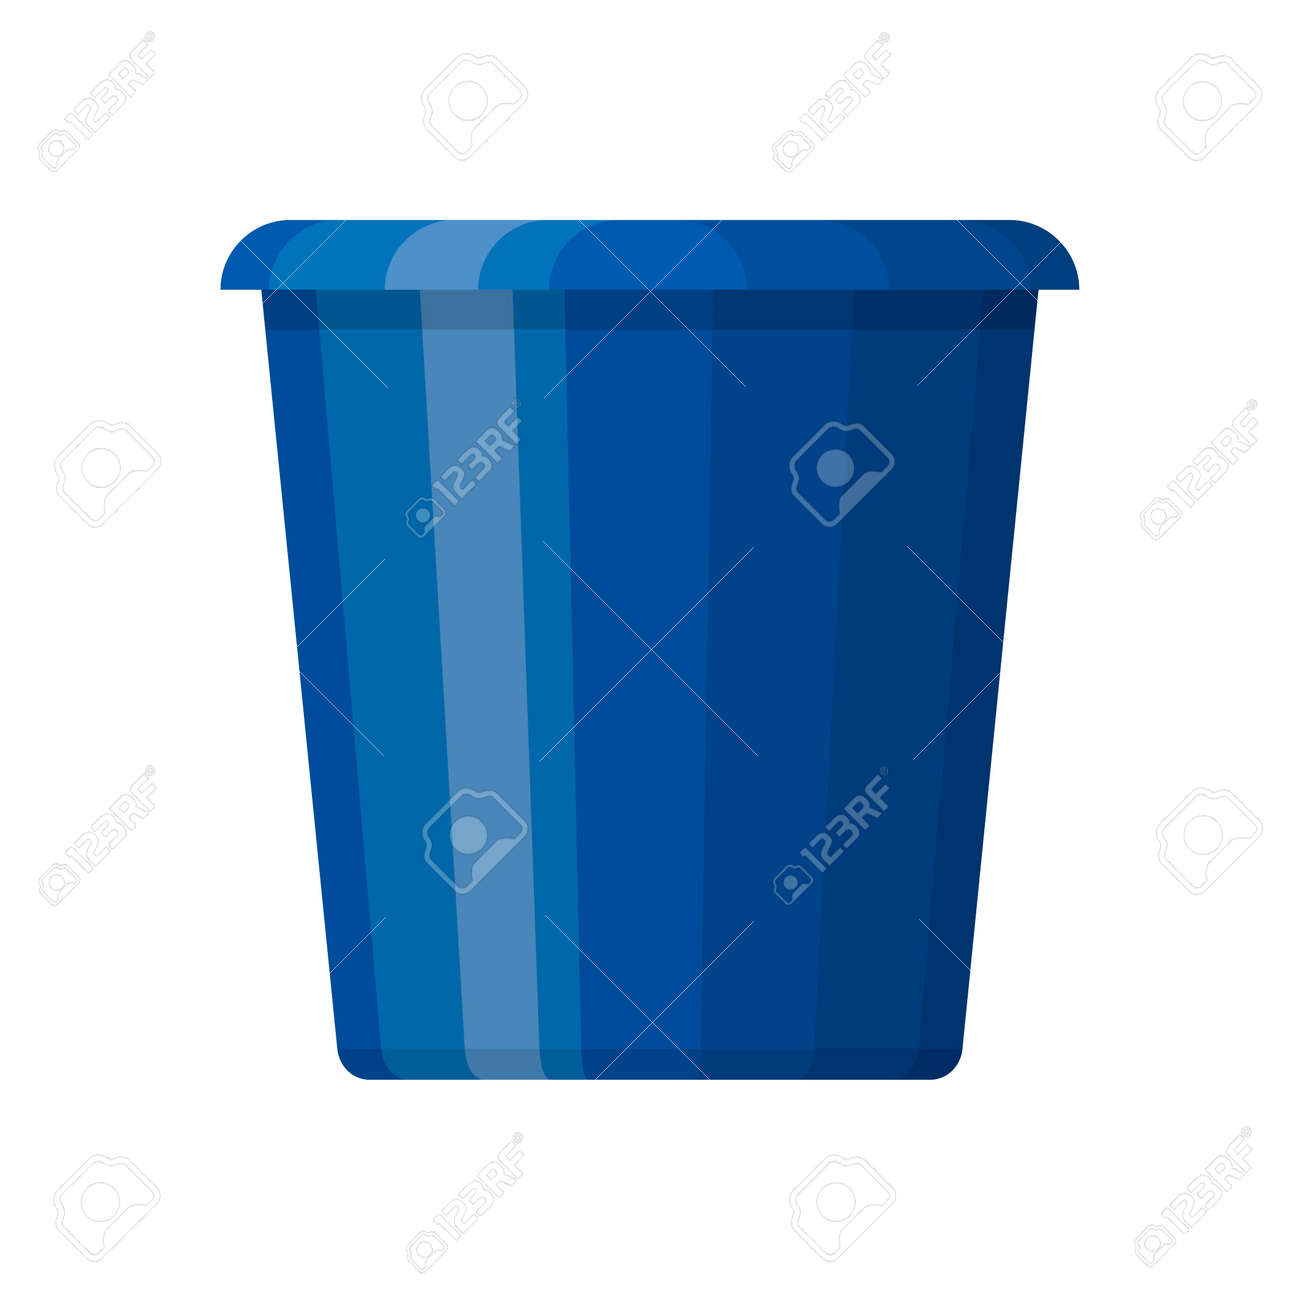 Blue plastic bucket in flat design isolated on white background. House cleaning and gardening equipment. Household accessories. Vector illustration - 162702582